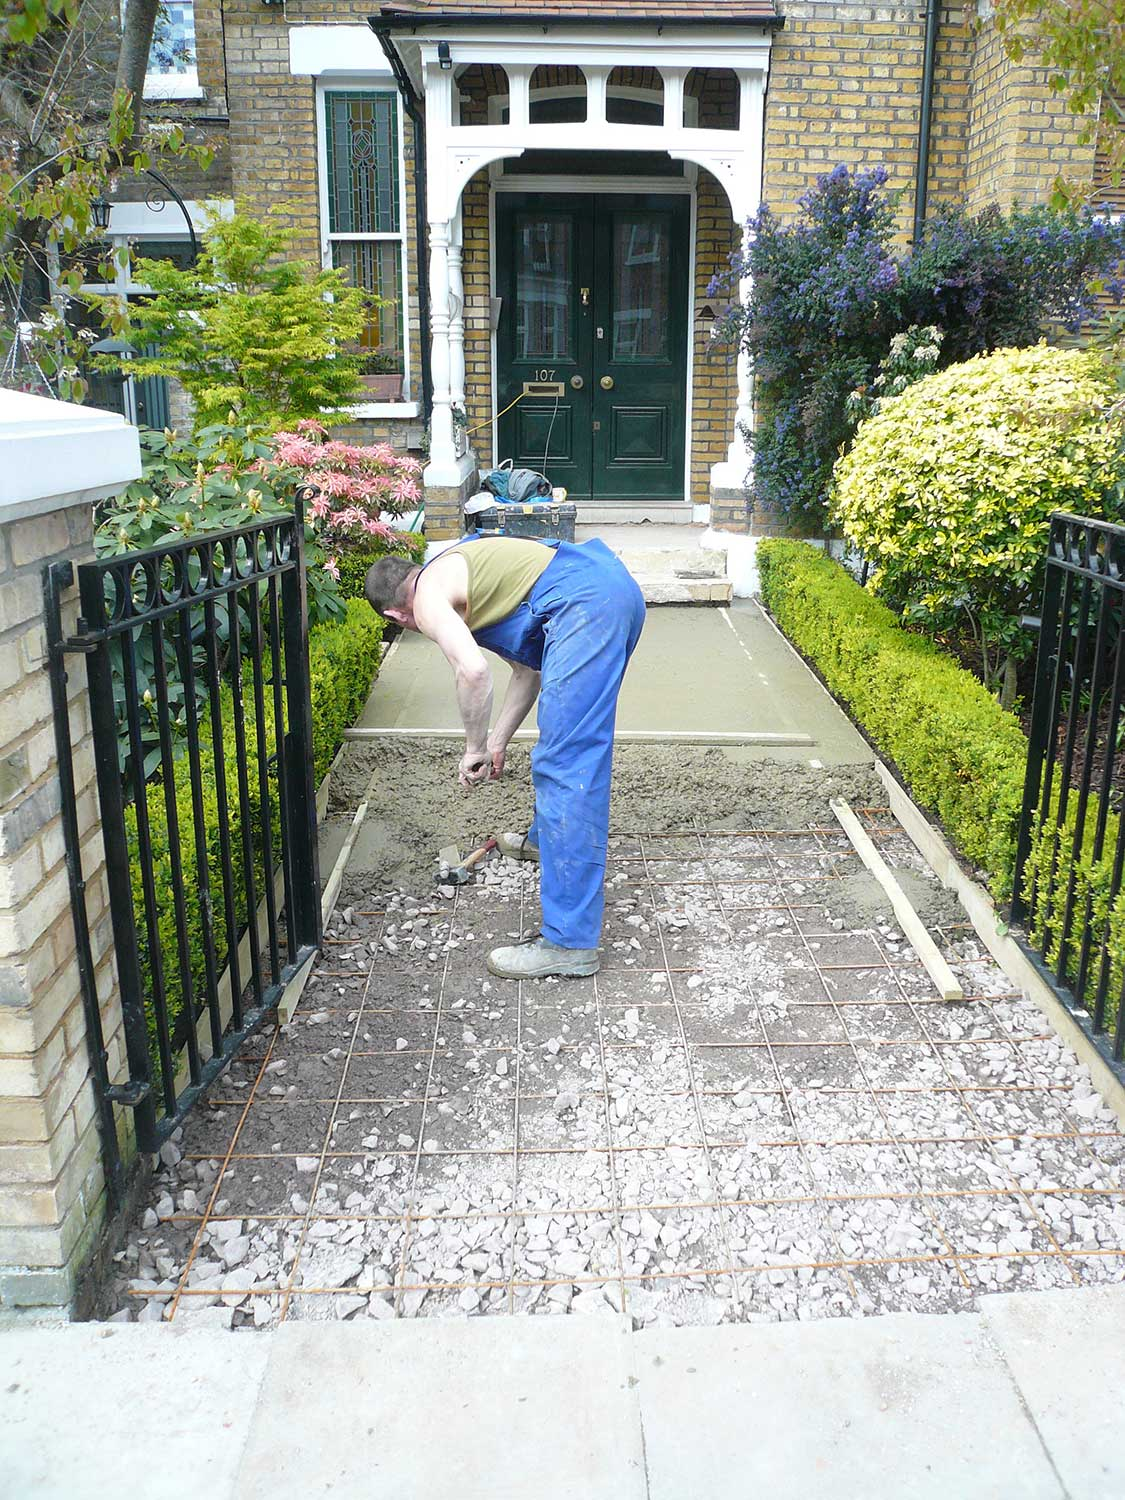 install-progress-victorian-tiling-path-garden-front-steps-exterior-black-and-white-london